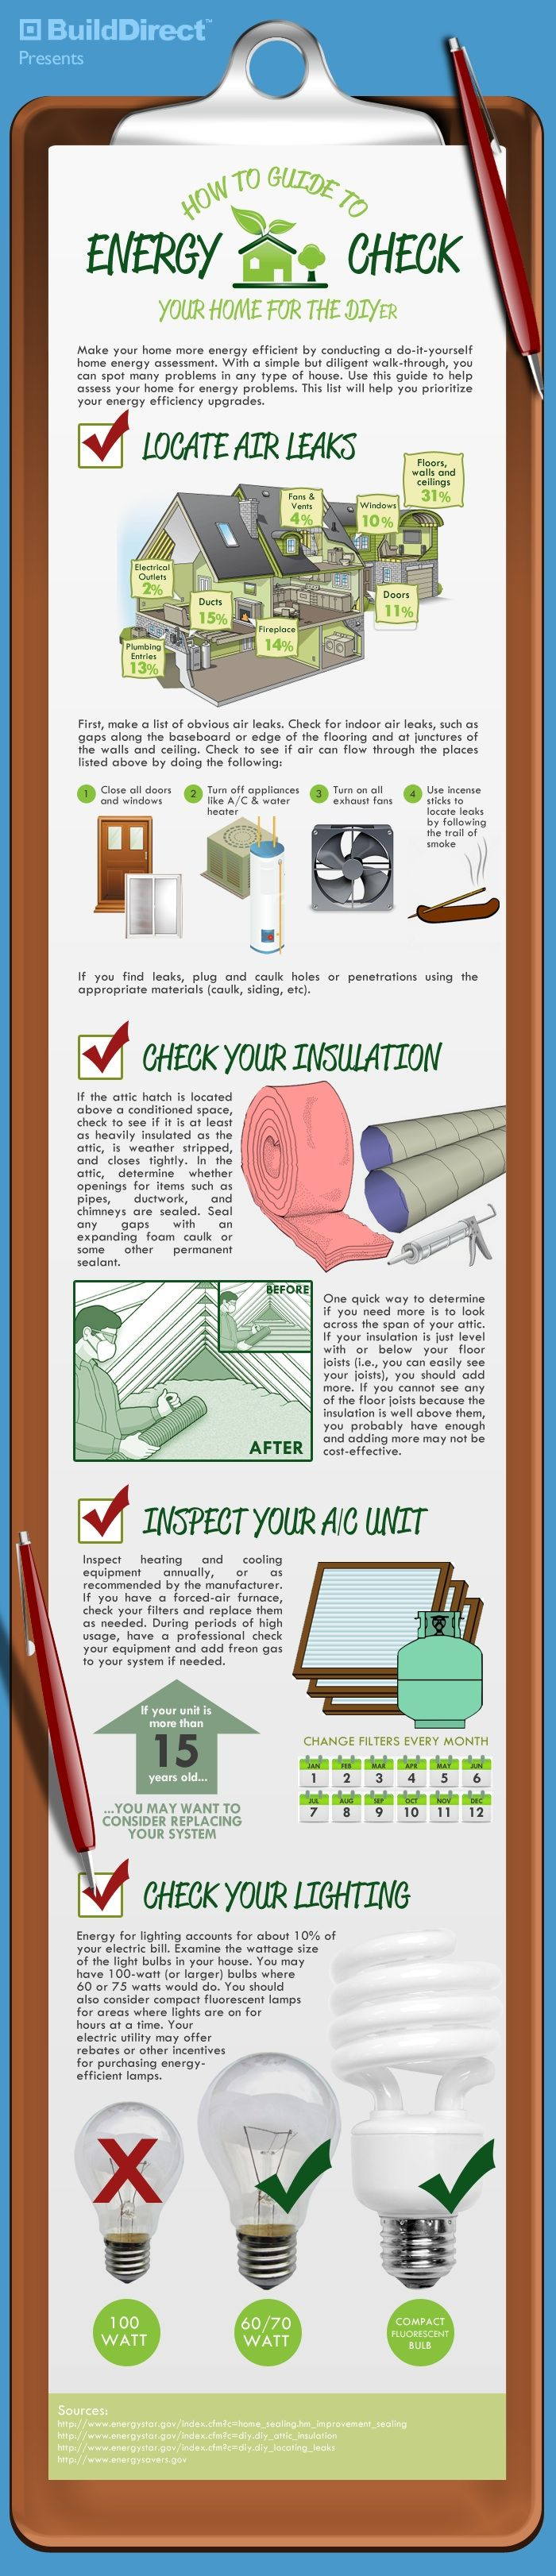 Great Tips on #energysaving, from loft #insulation through to ideas on checkin for air leaks